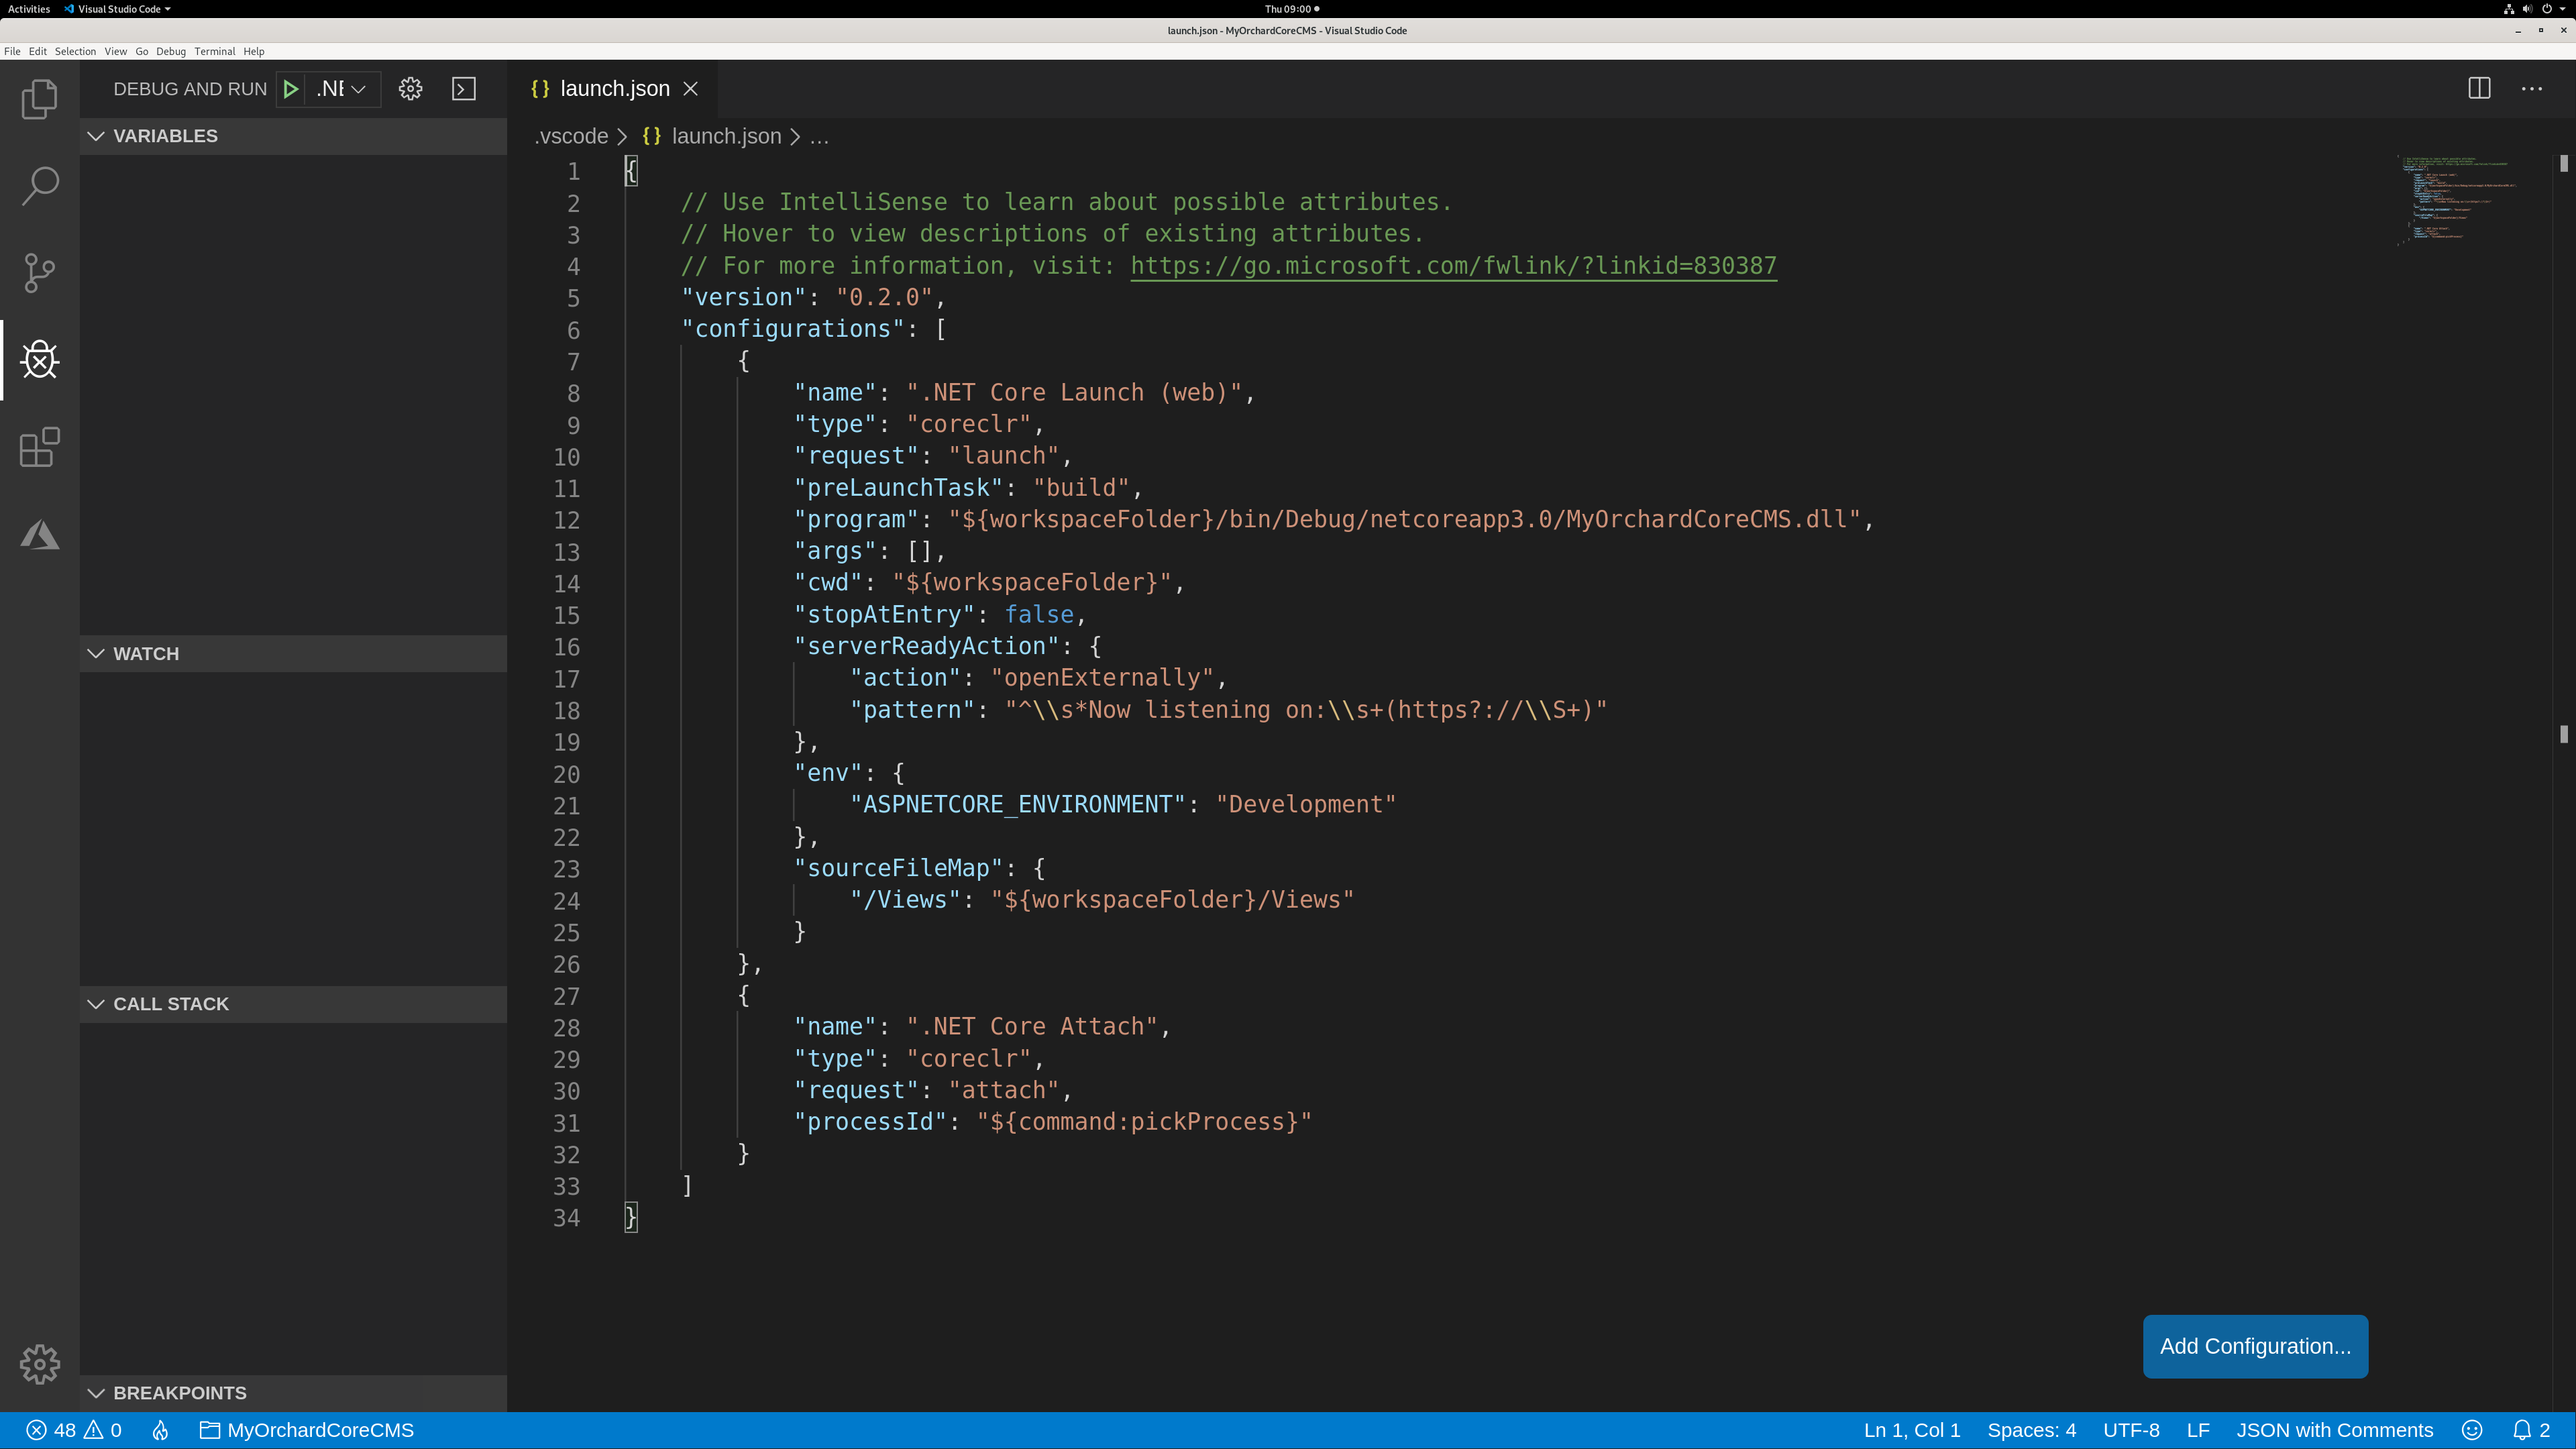 Developing-Orchard-Core-CMS-Applications-Using-Linux-and-VSCode-015